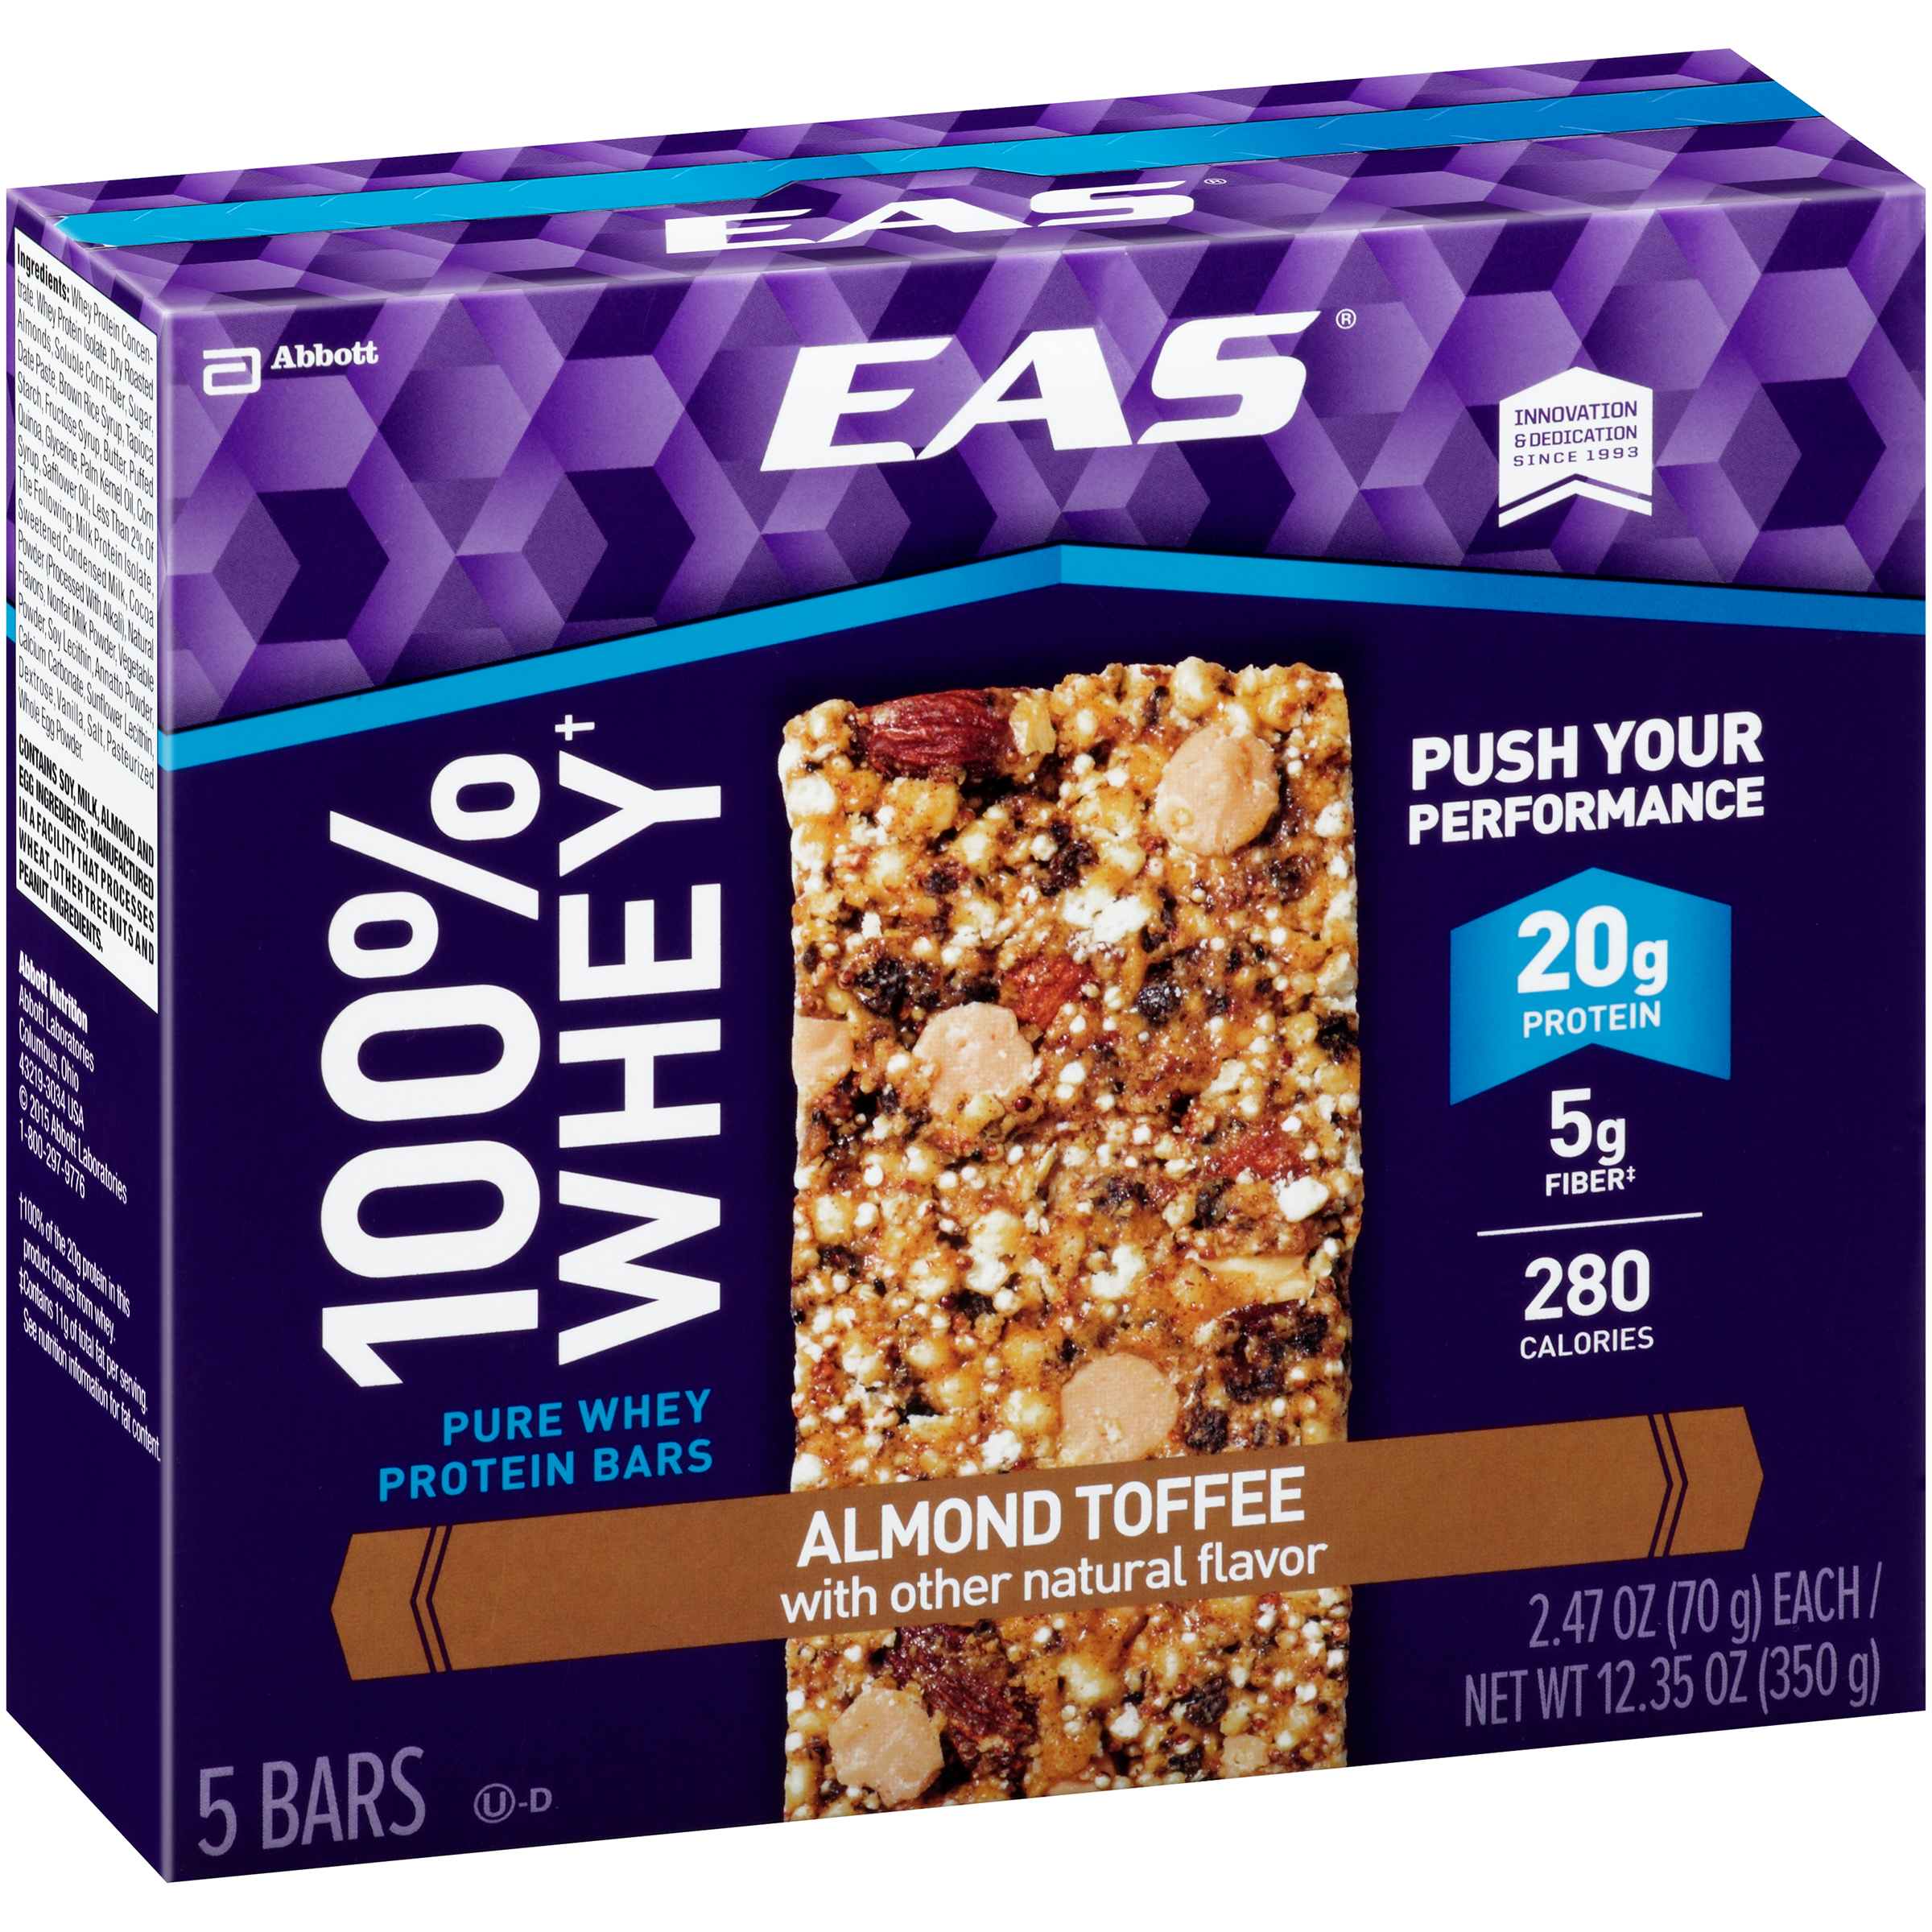 EAS 100% Whey Protein Almond Toffee Bars 5-2.47 oz. Box by Abbott NutritionAbbott Laboratories